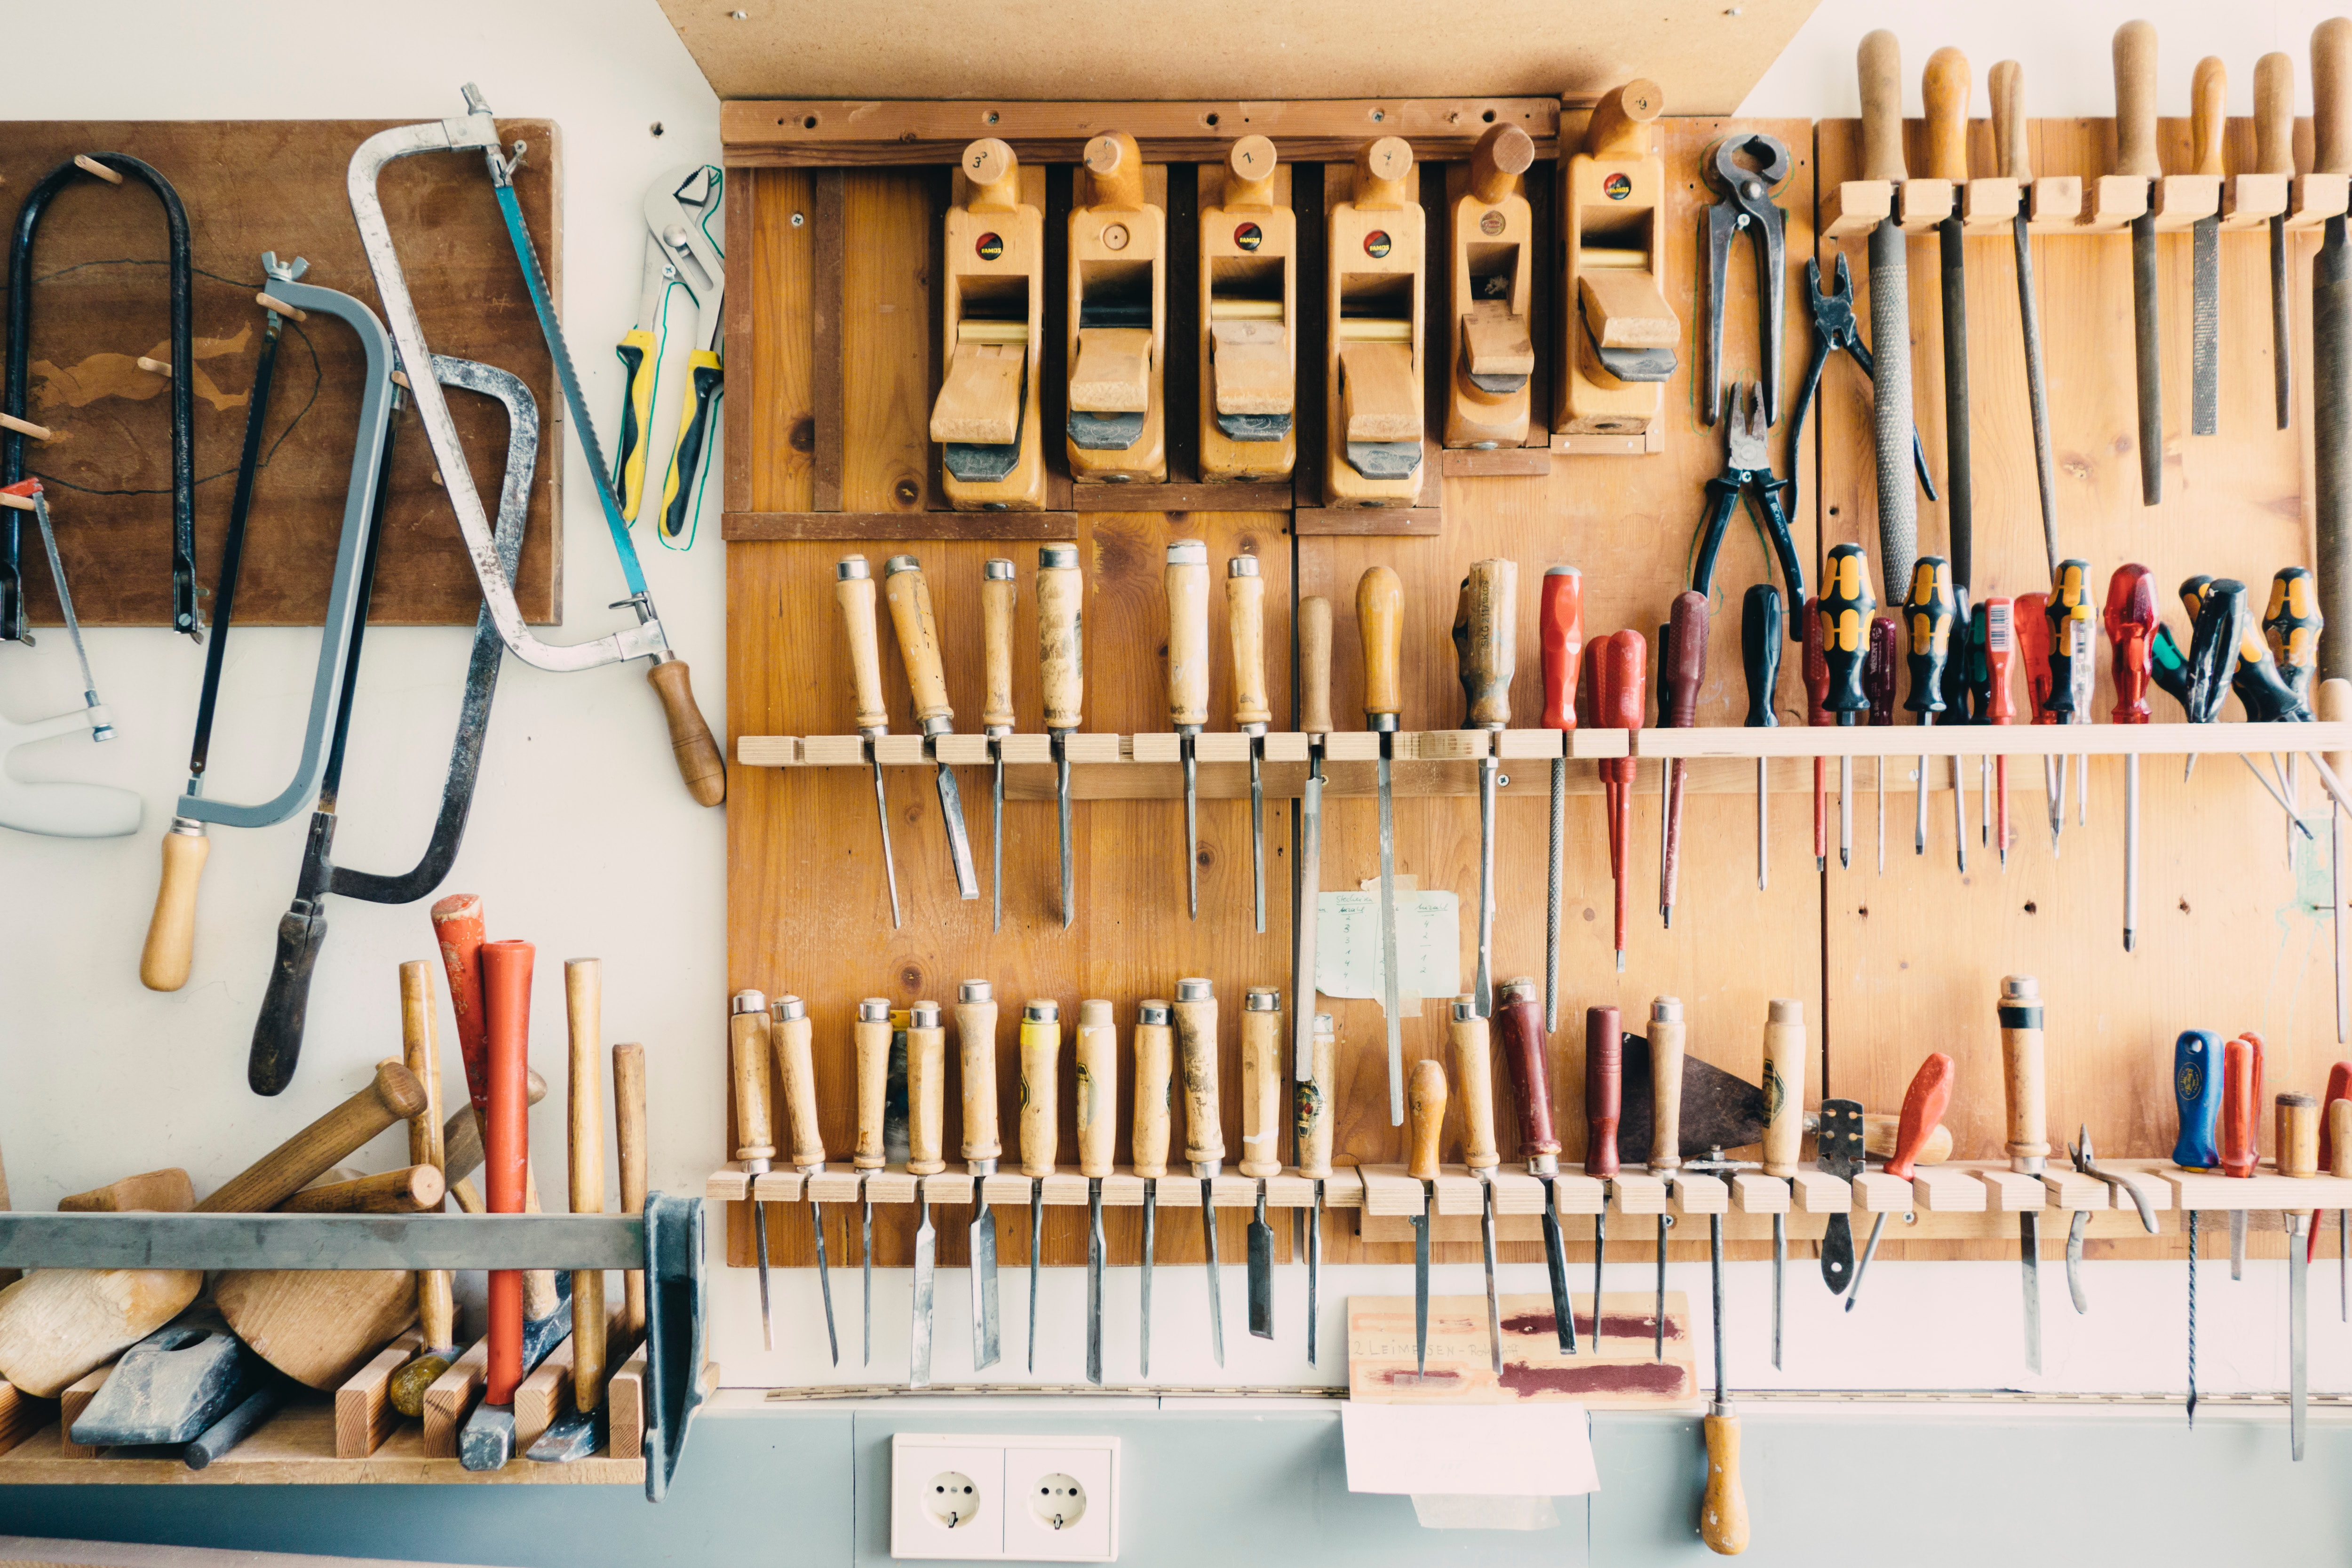 Shed organization can be done in as little as a day and can save you time and stress.